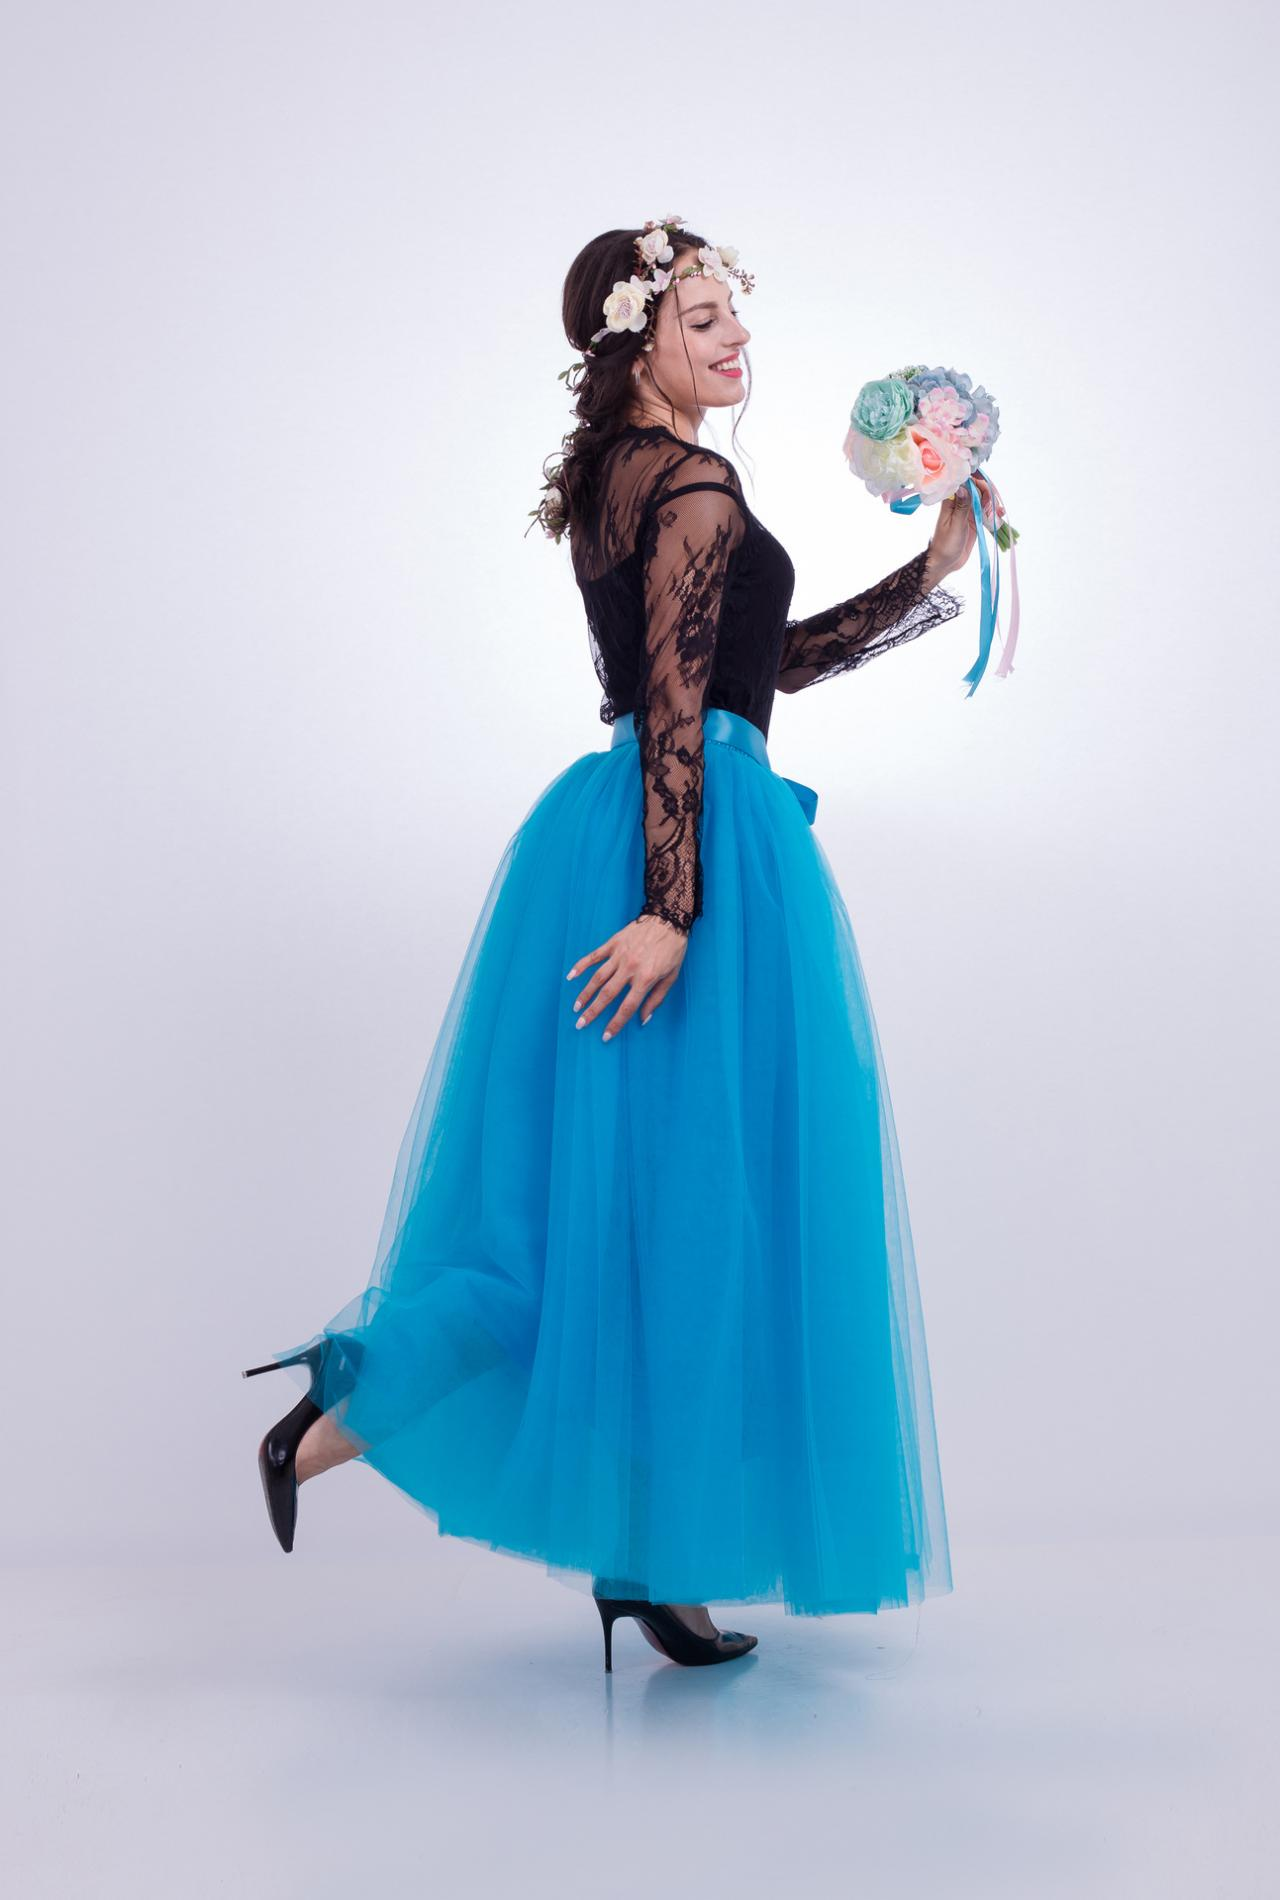 6 Layers Tulle Skirt Summer Maxi Long Muslim Skirt Womens Elastic Waist Lolita Tutu Skirts blue